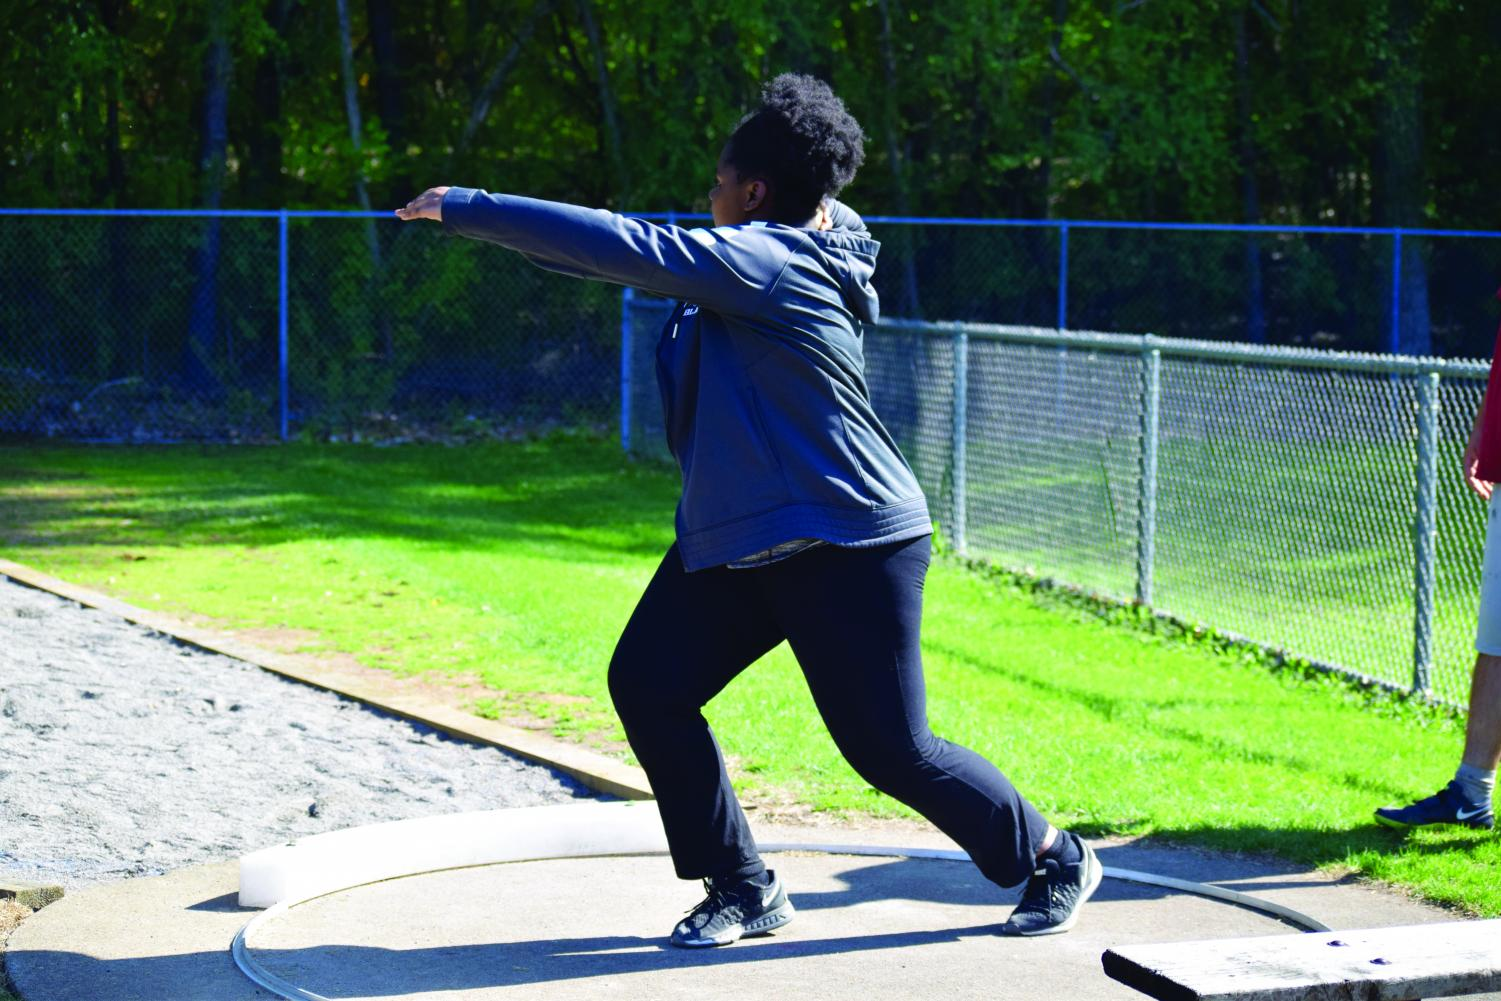 Cheryl Minde '20 throws a discus during a practice. The team practices all of their various events along the fields and track at the Hopkins campus.